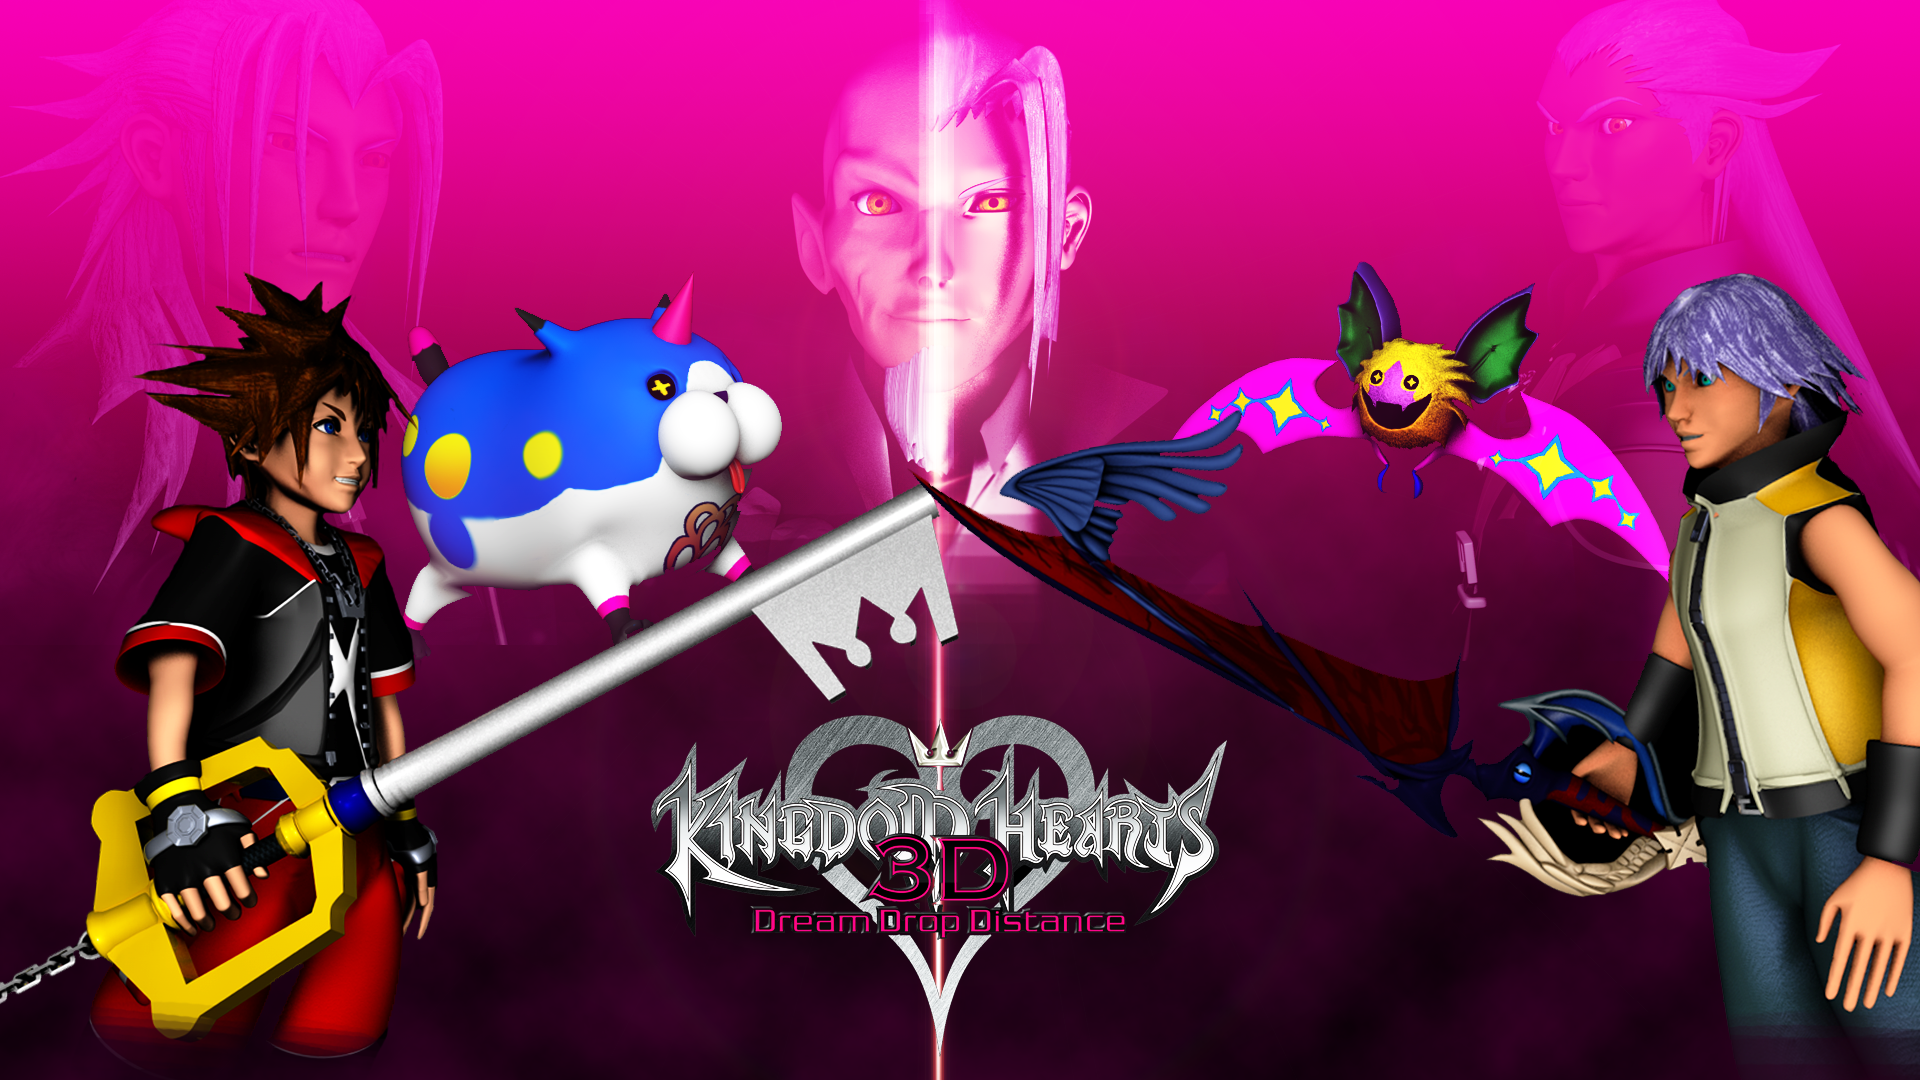 Kingdom Hearts 3D Wallpaper by TheRPGPlayer 1920x1080